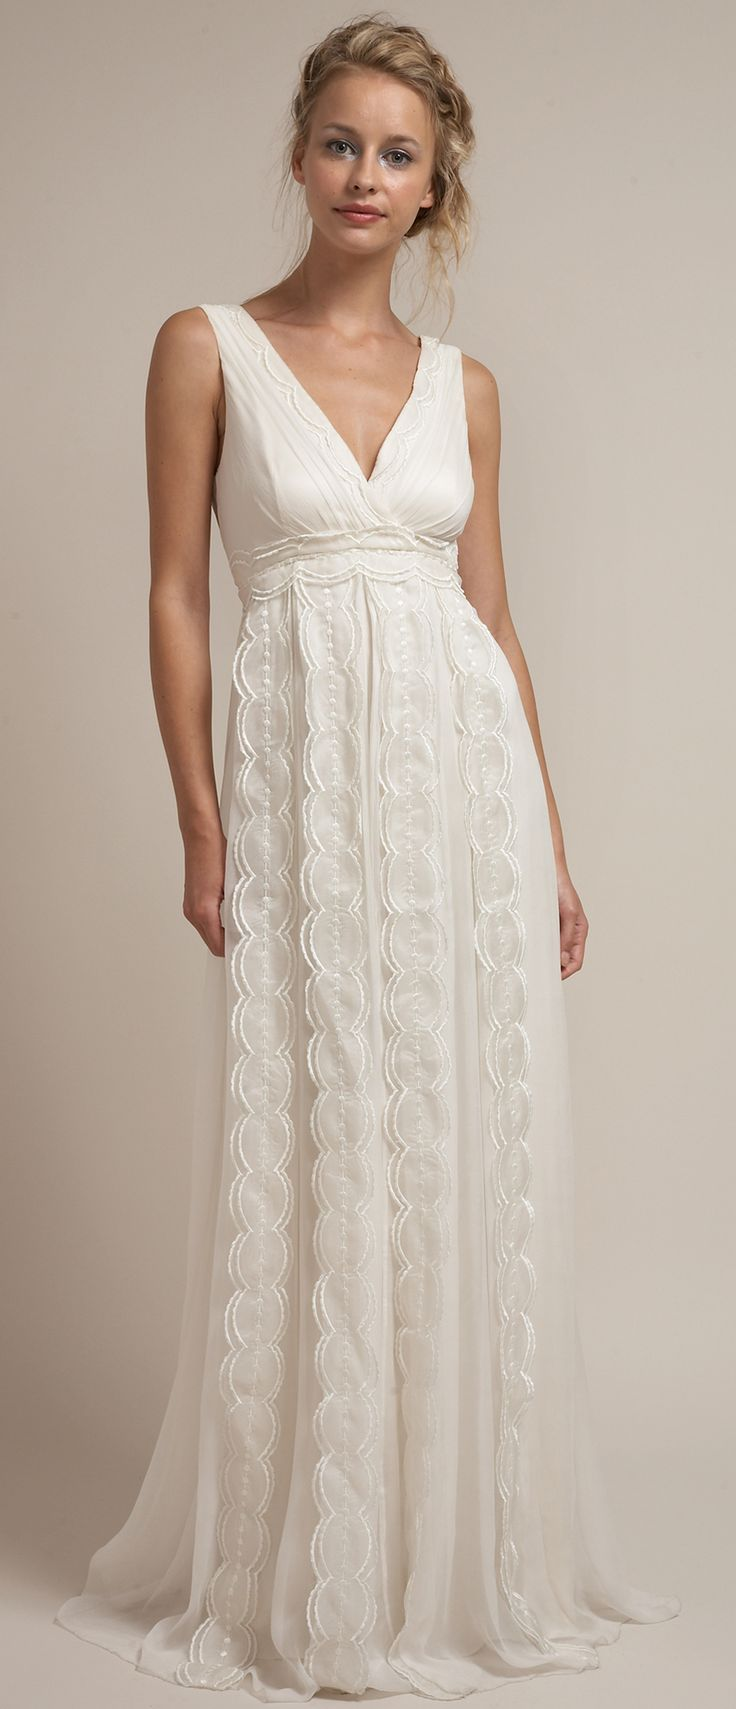 Lace Rustic Chic Wedding Dress If It Was Just A Tad Shorter Would Be